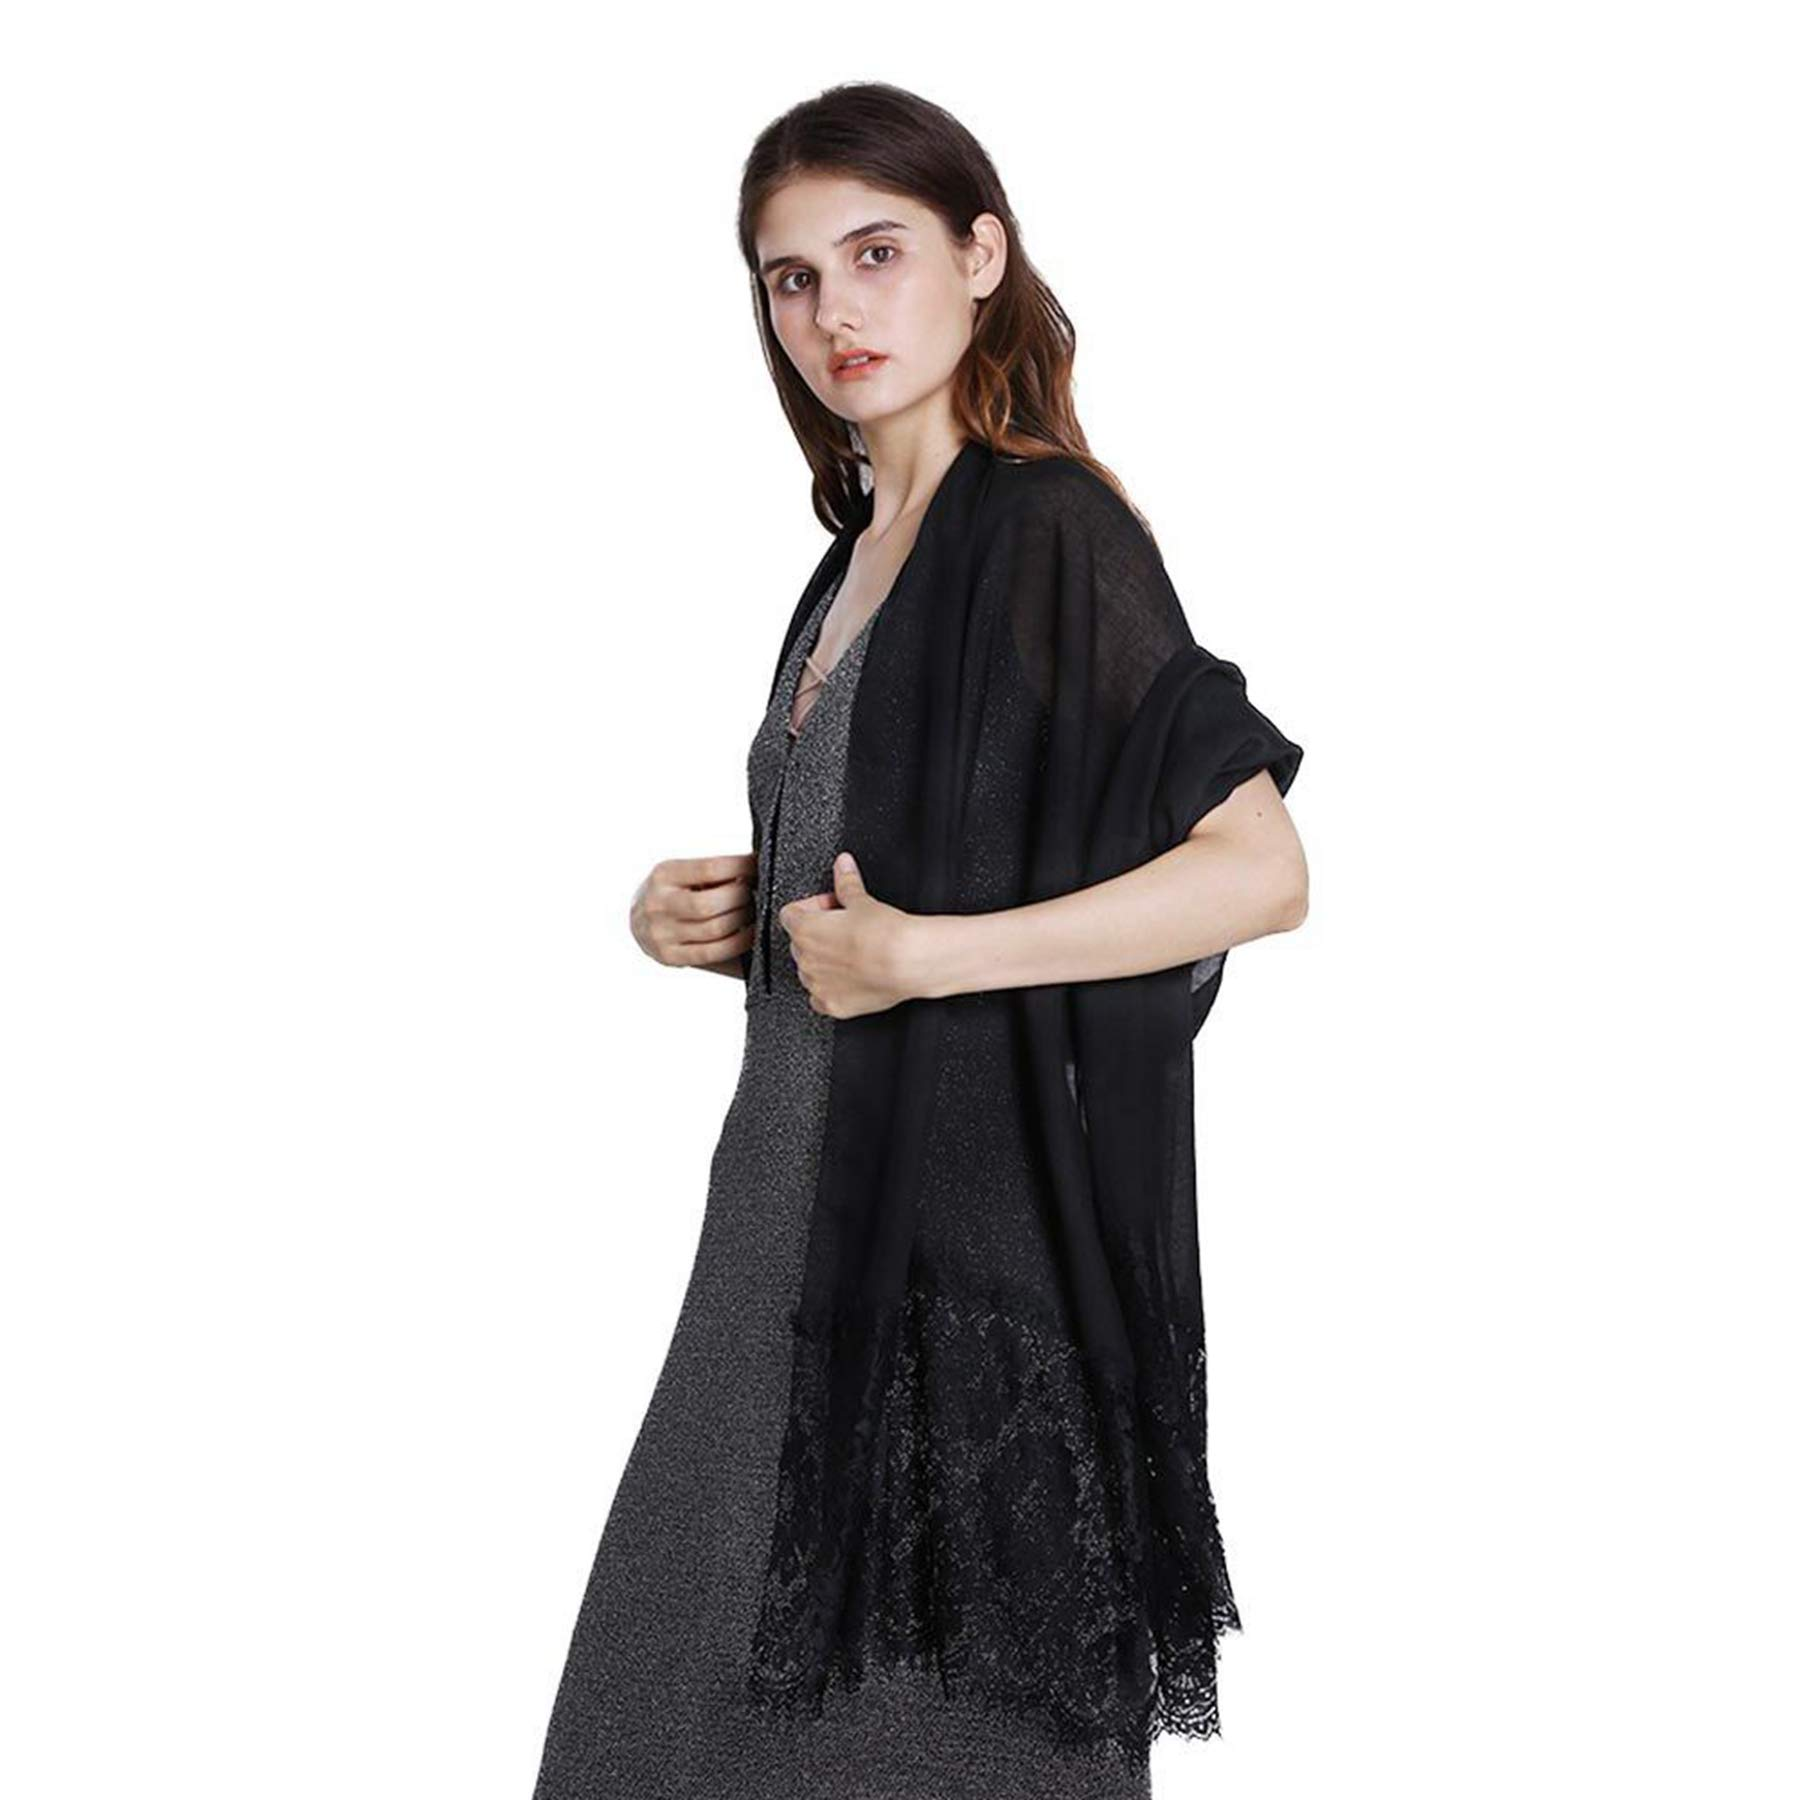 Women Fashion Scarf Wrap Shawl,RiscaWin Autumn Soft Lightweight Lace Scarves Wrap Warm Scarf(Black) by RiscaWin (Image #5)